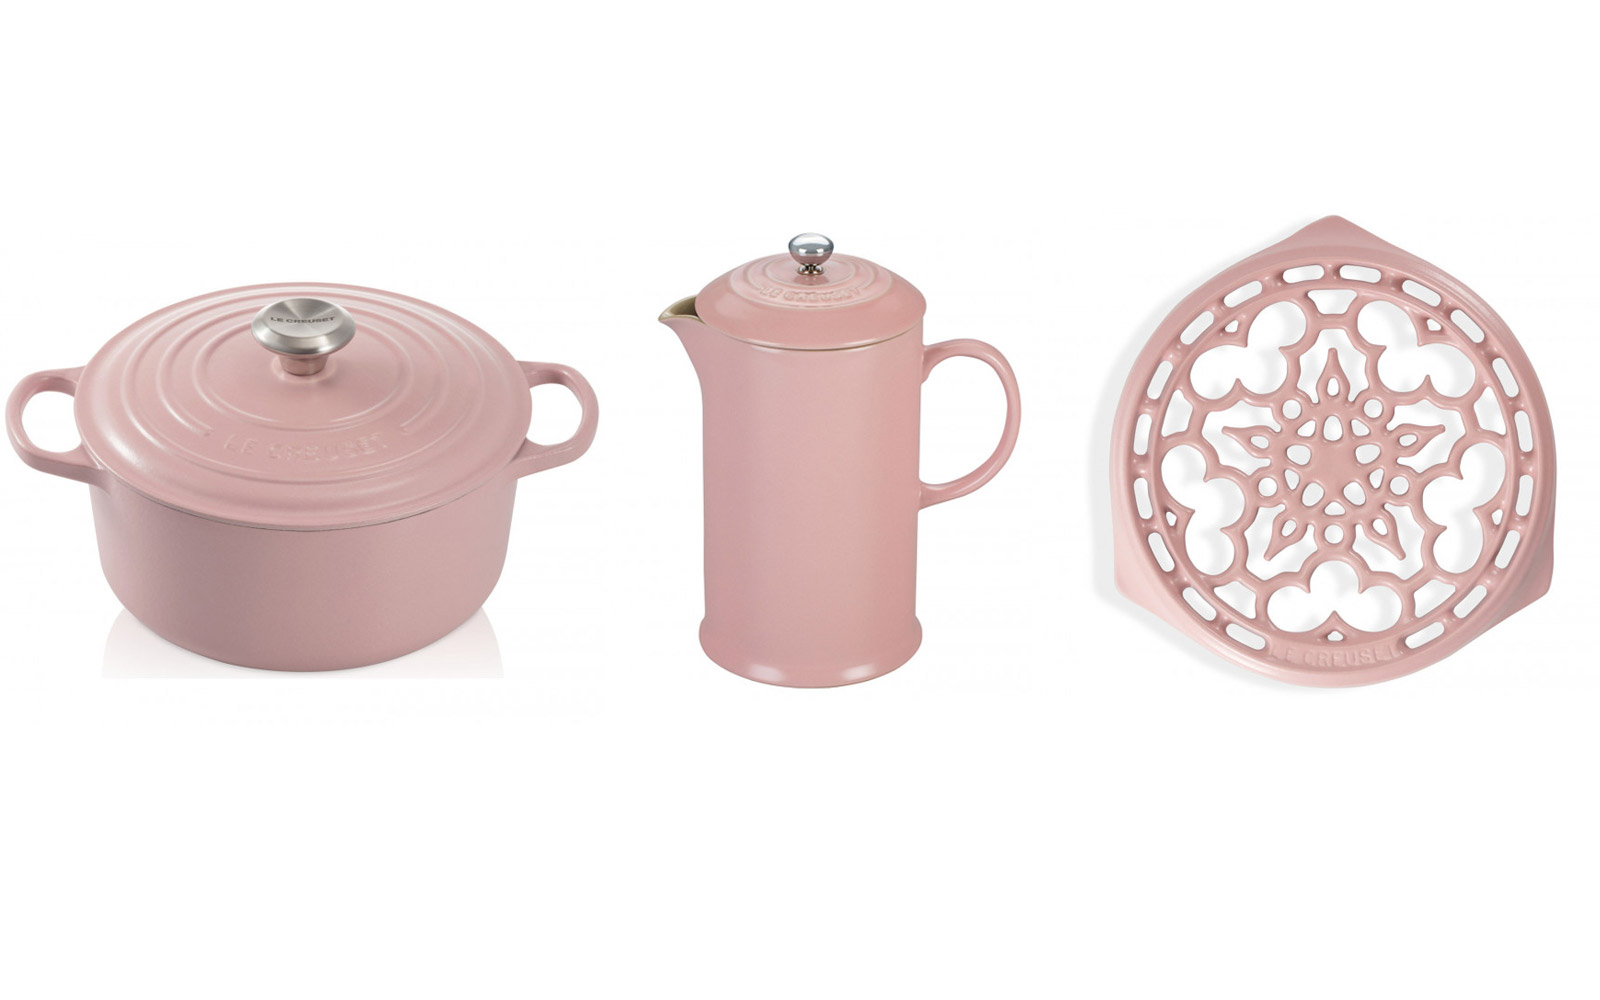 Le Creuset Launched a Gorgeous New Line of Blush Pink Cookware